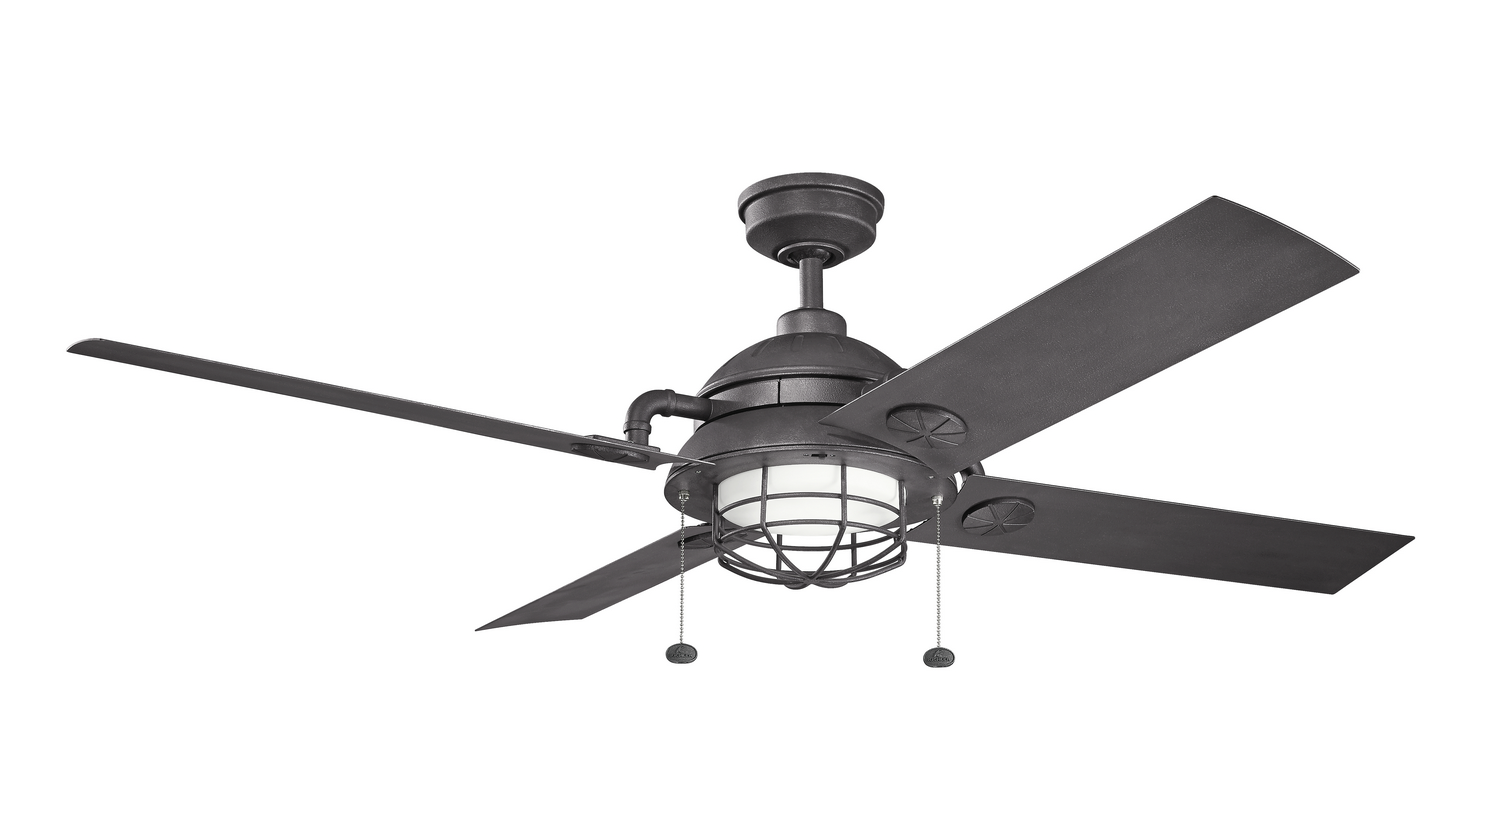 65 inchCeiling Fan from the Maor collection by Kichler 310136DBK